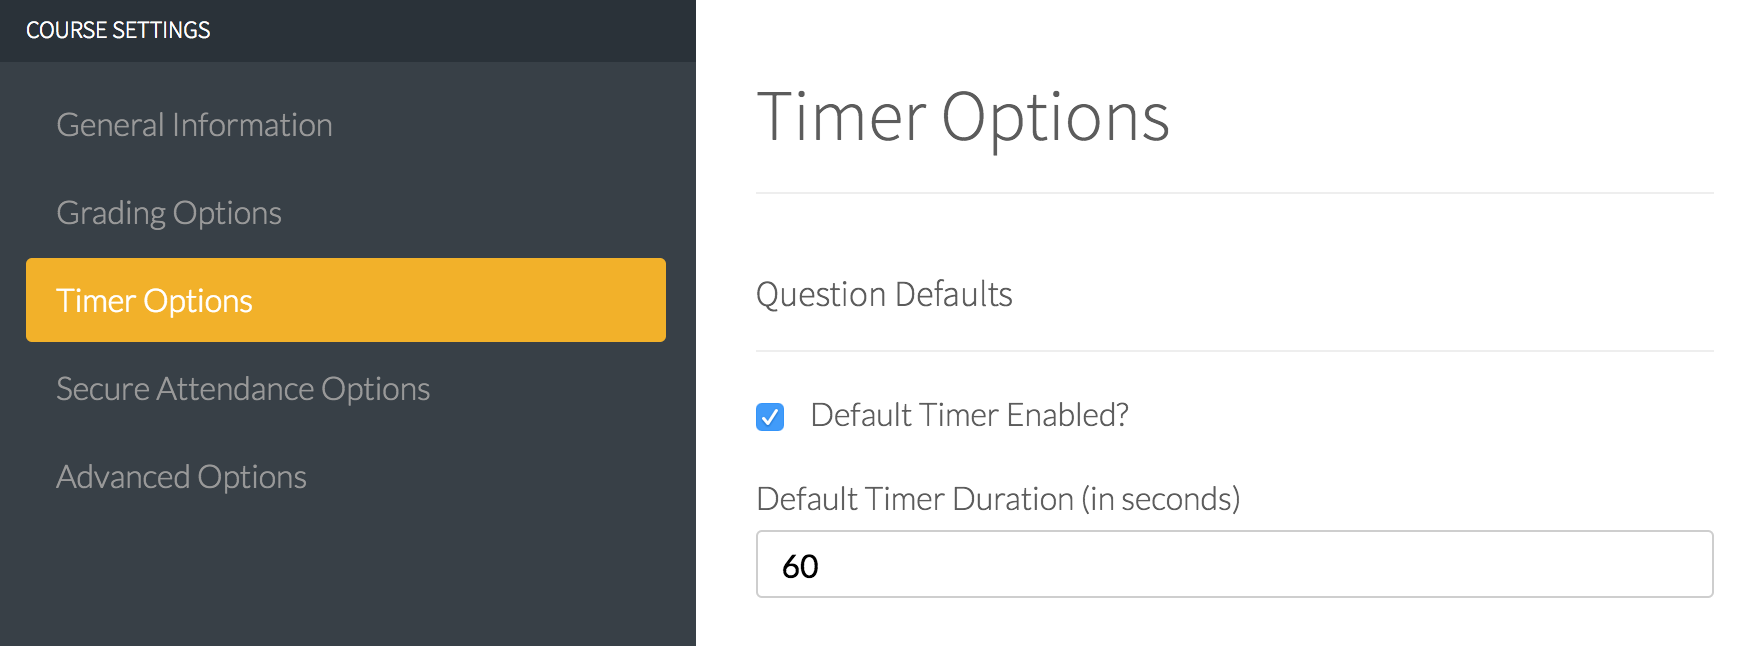 Course administration settings: Timer options